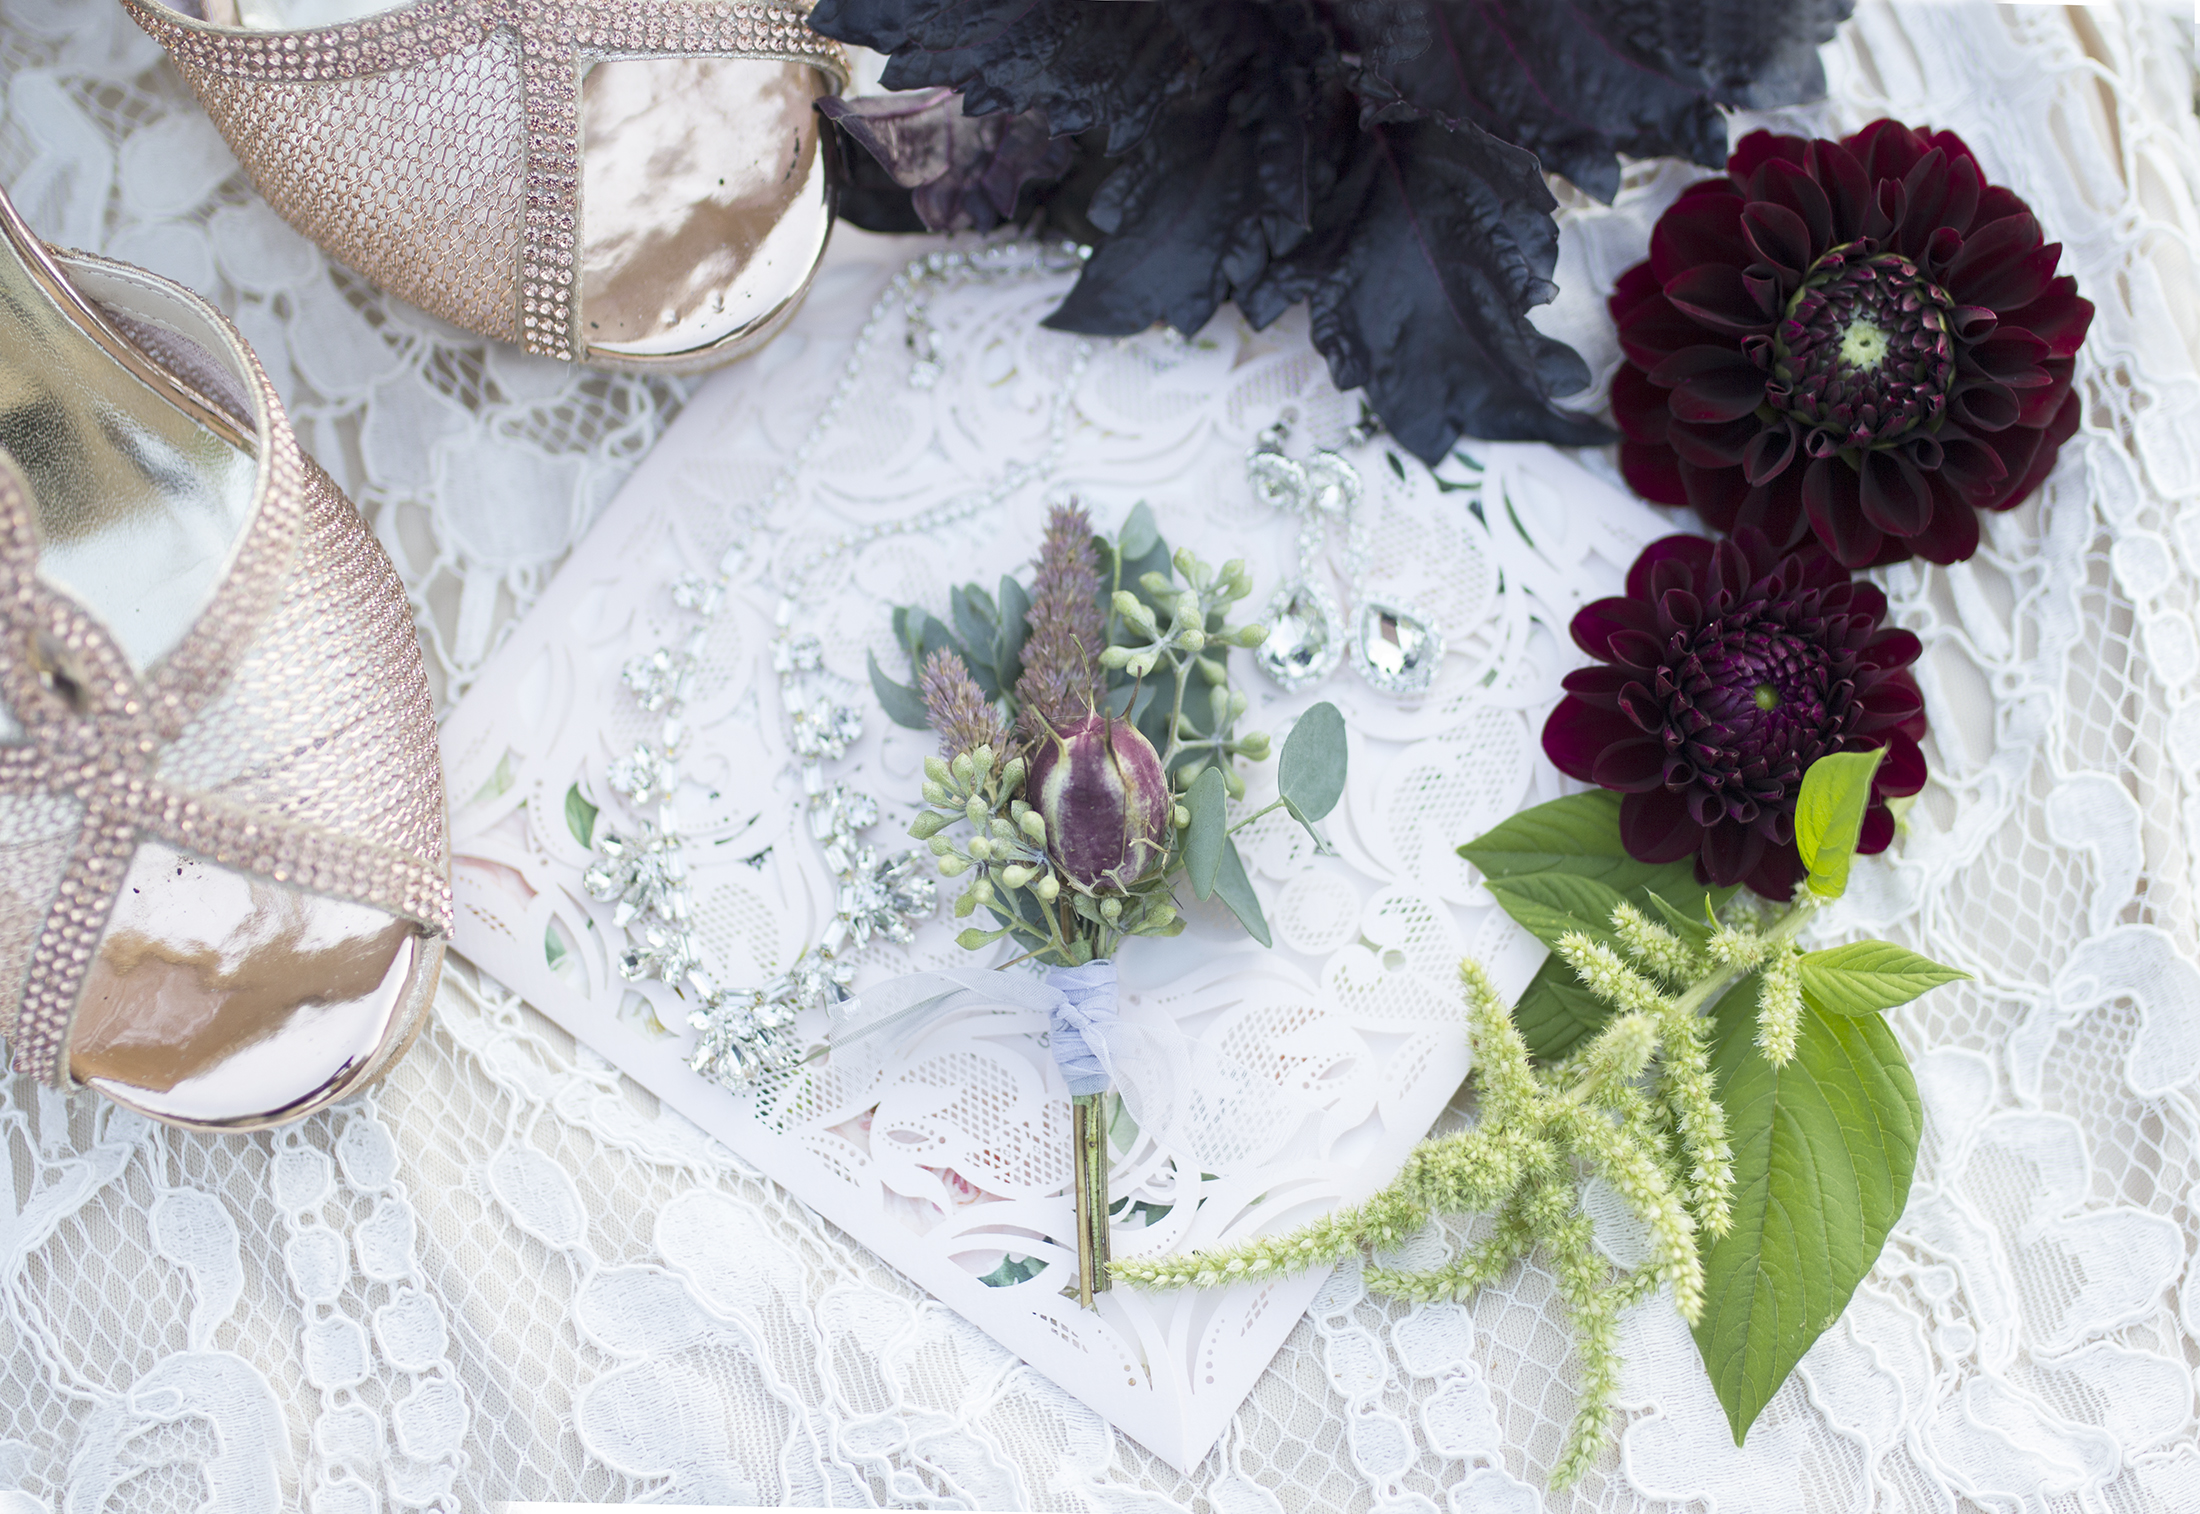 Beautiful bridal details! Moody colors accented by eucalyptus and bright green amaranthus from the garden